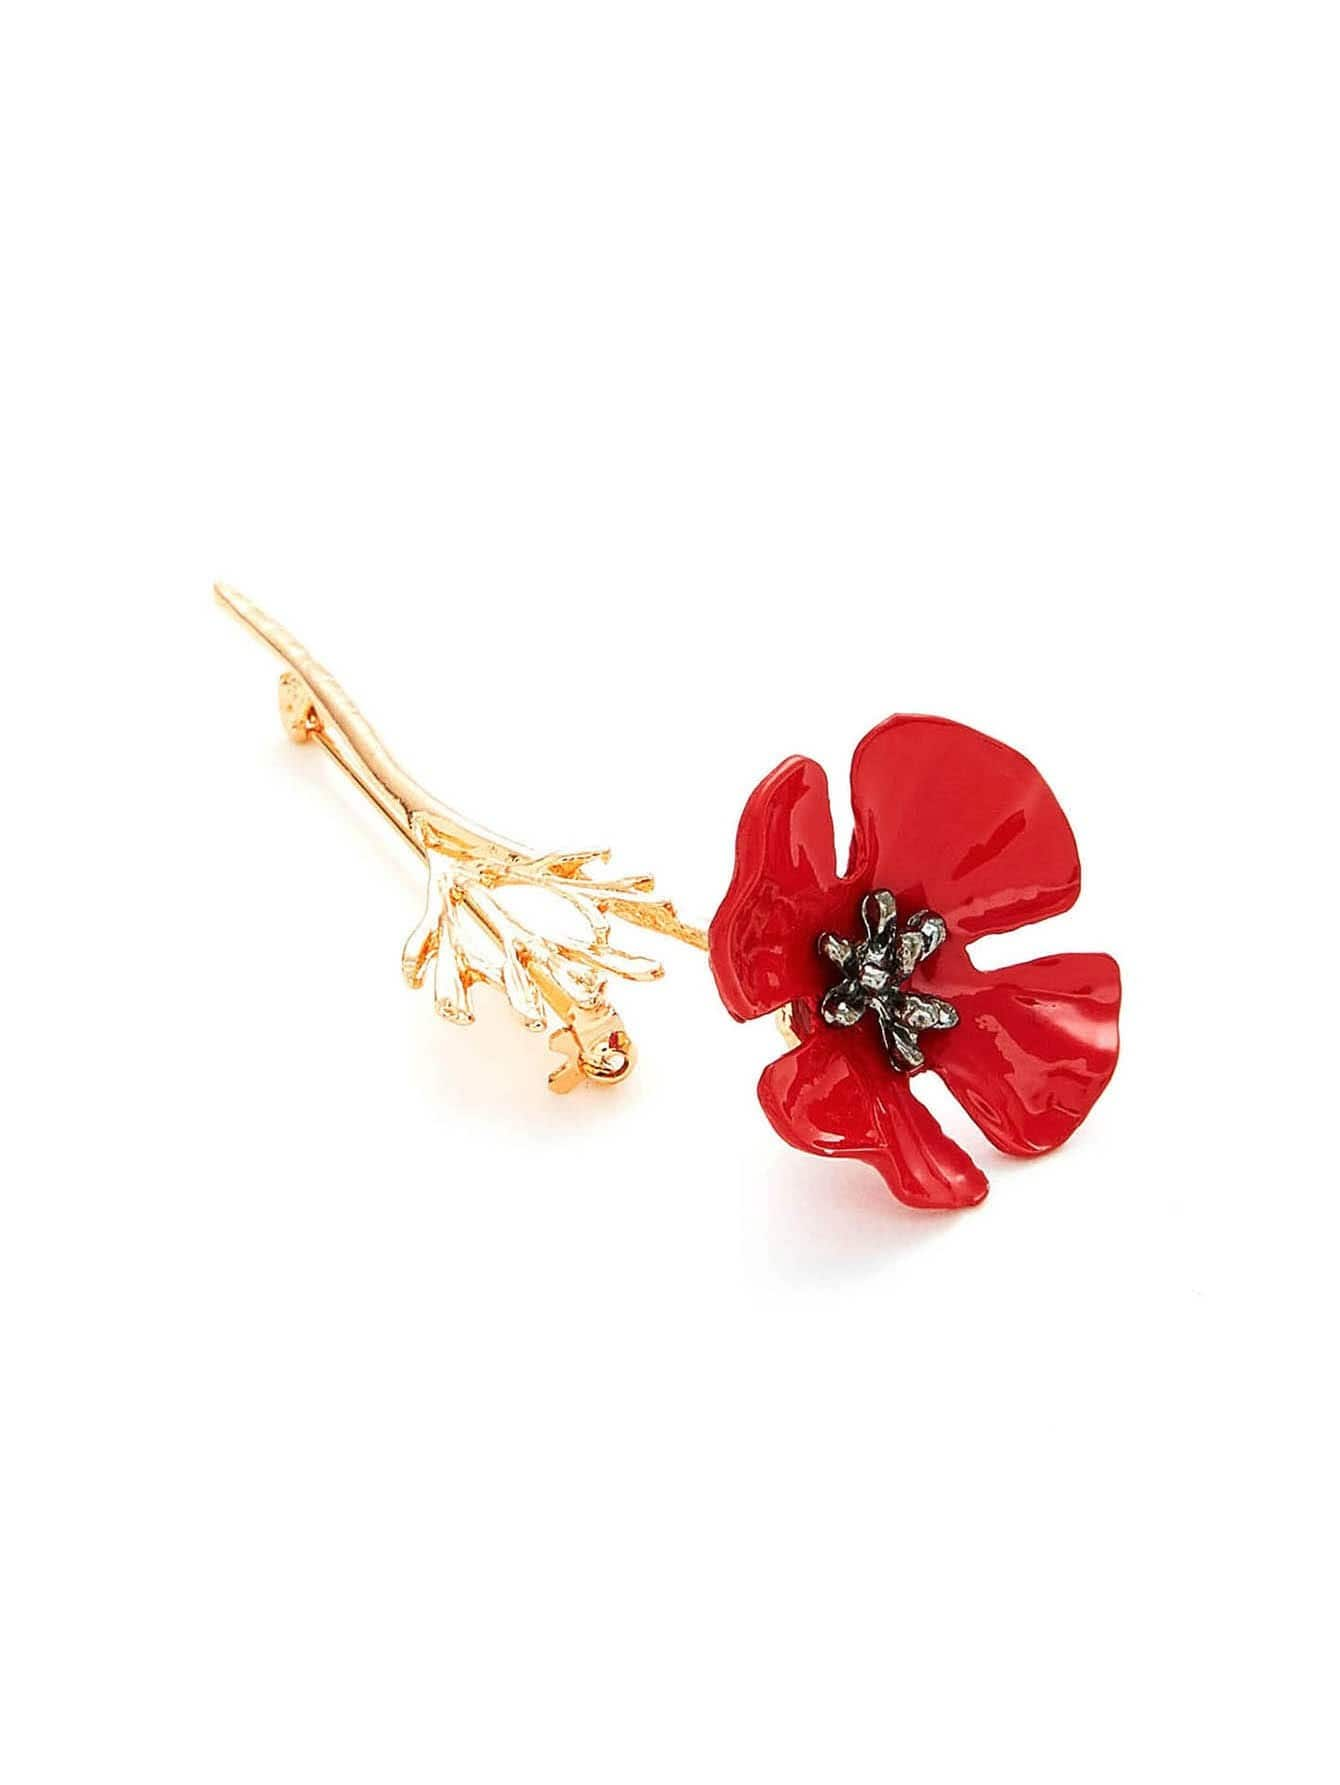 Flower Design Brooch 1pc digital carbon dioxide monitor indoor air quality co2 meter temperature rh humidity twa stel 99 points memory taiwan made